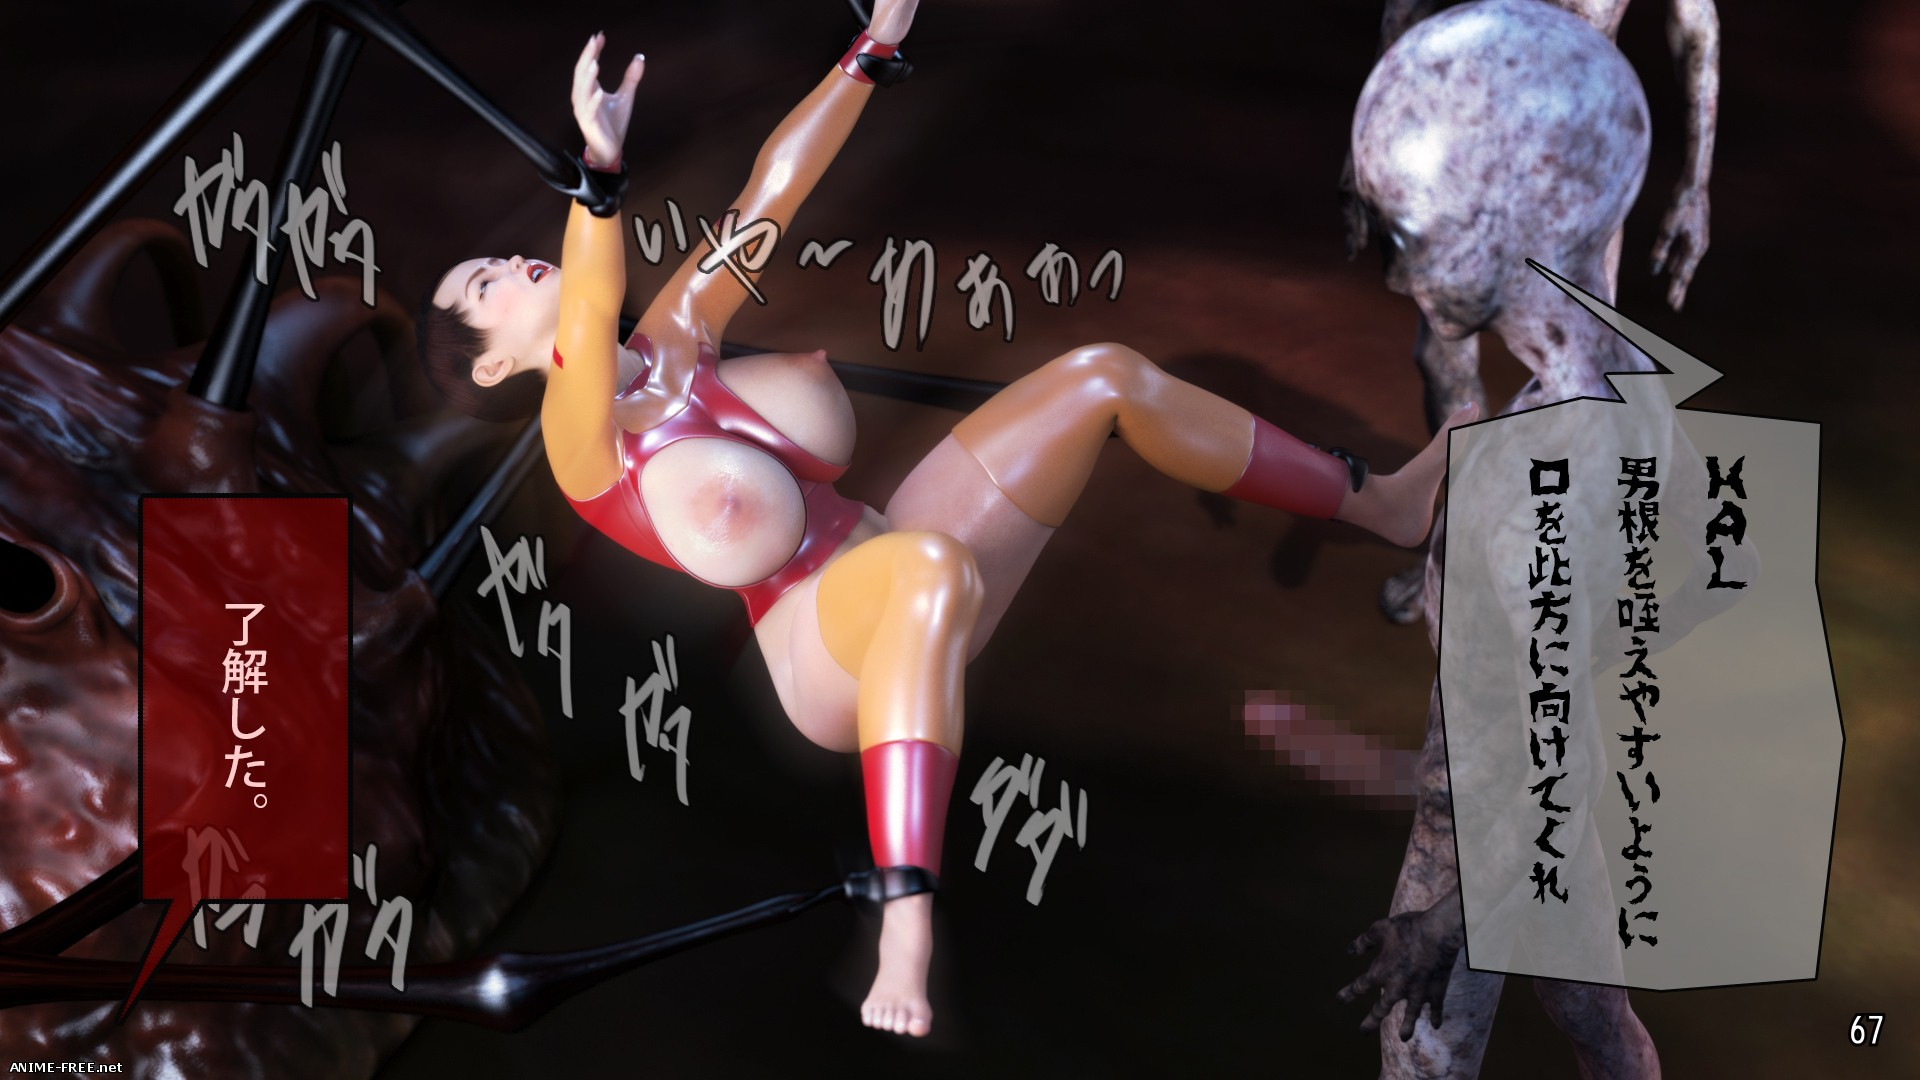 Space Babe Yukino Got Cuckolded By An Alien Three Days Before Her Wedding. [3DCG] [Cen] [JPG] Hentai ART